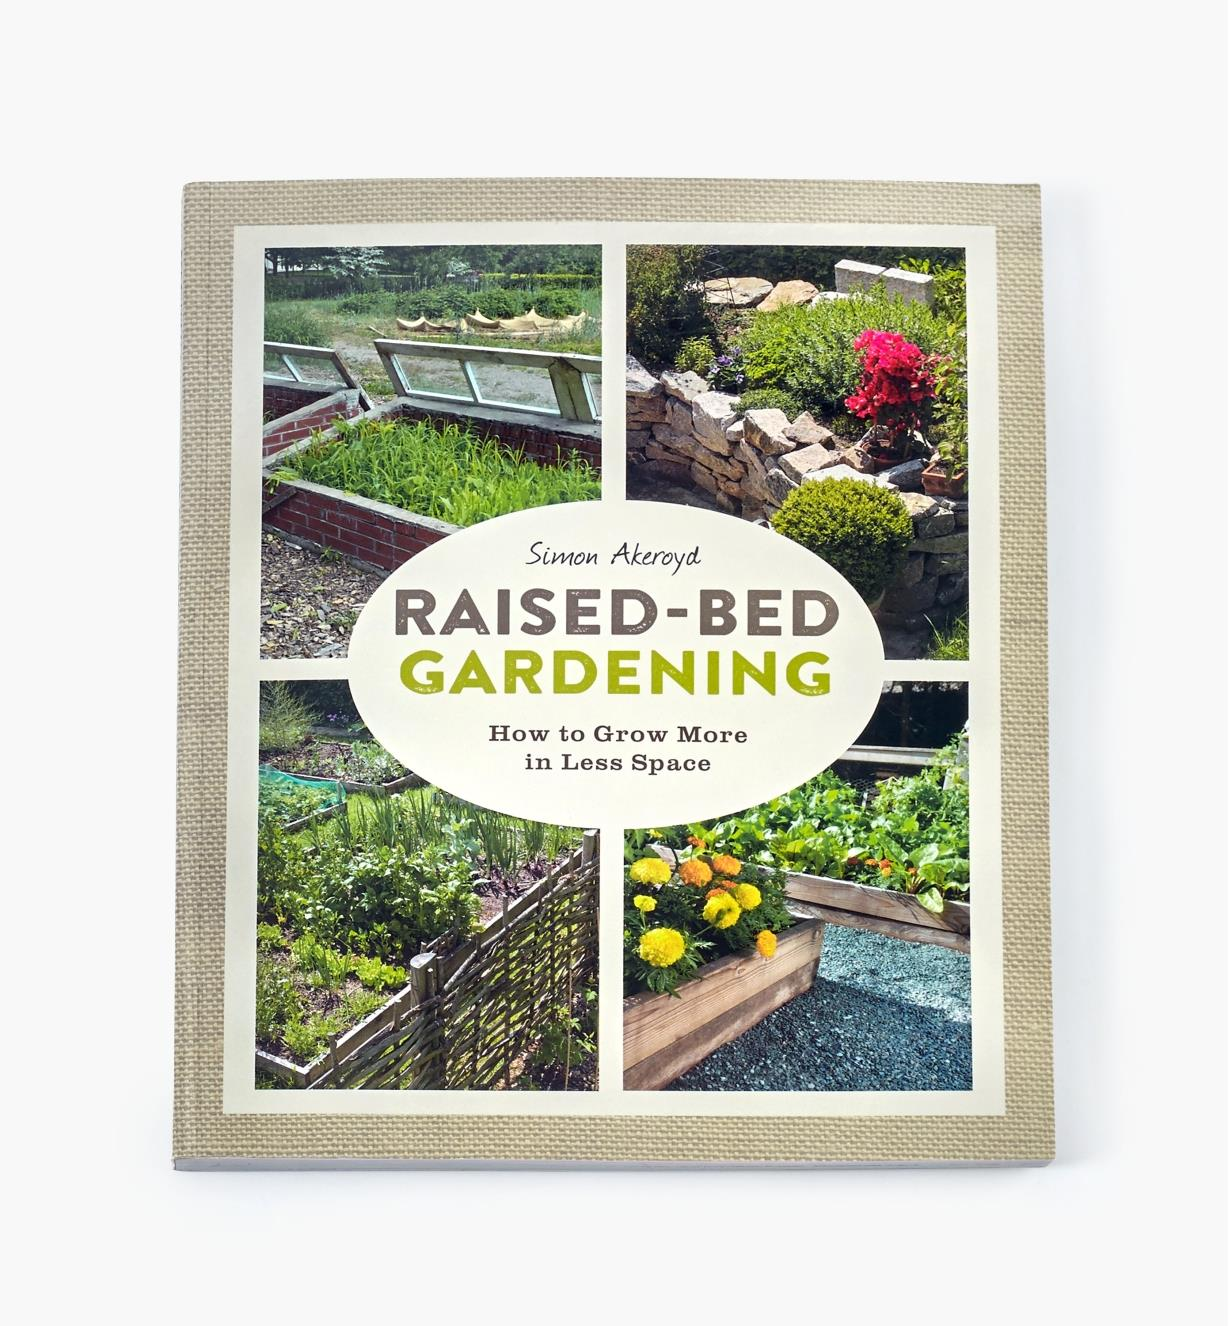 LA883 - Raised-Bed Gardening – How to Grow More in Less Space